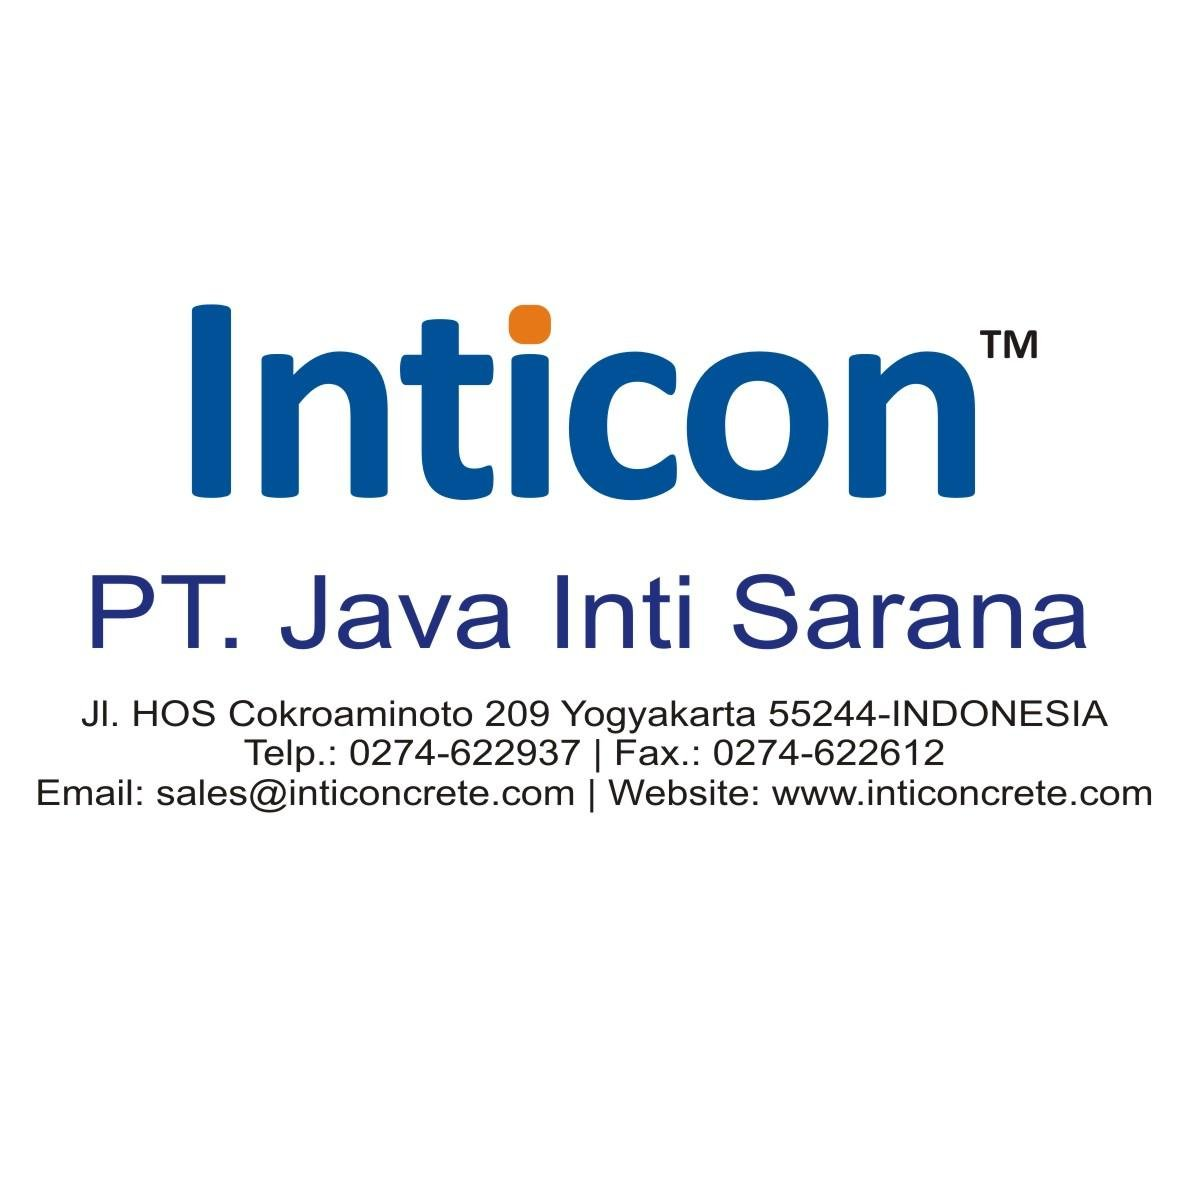 Inticon Au Coupons & Promo codes